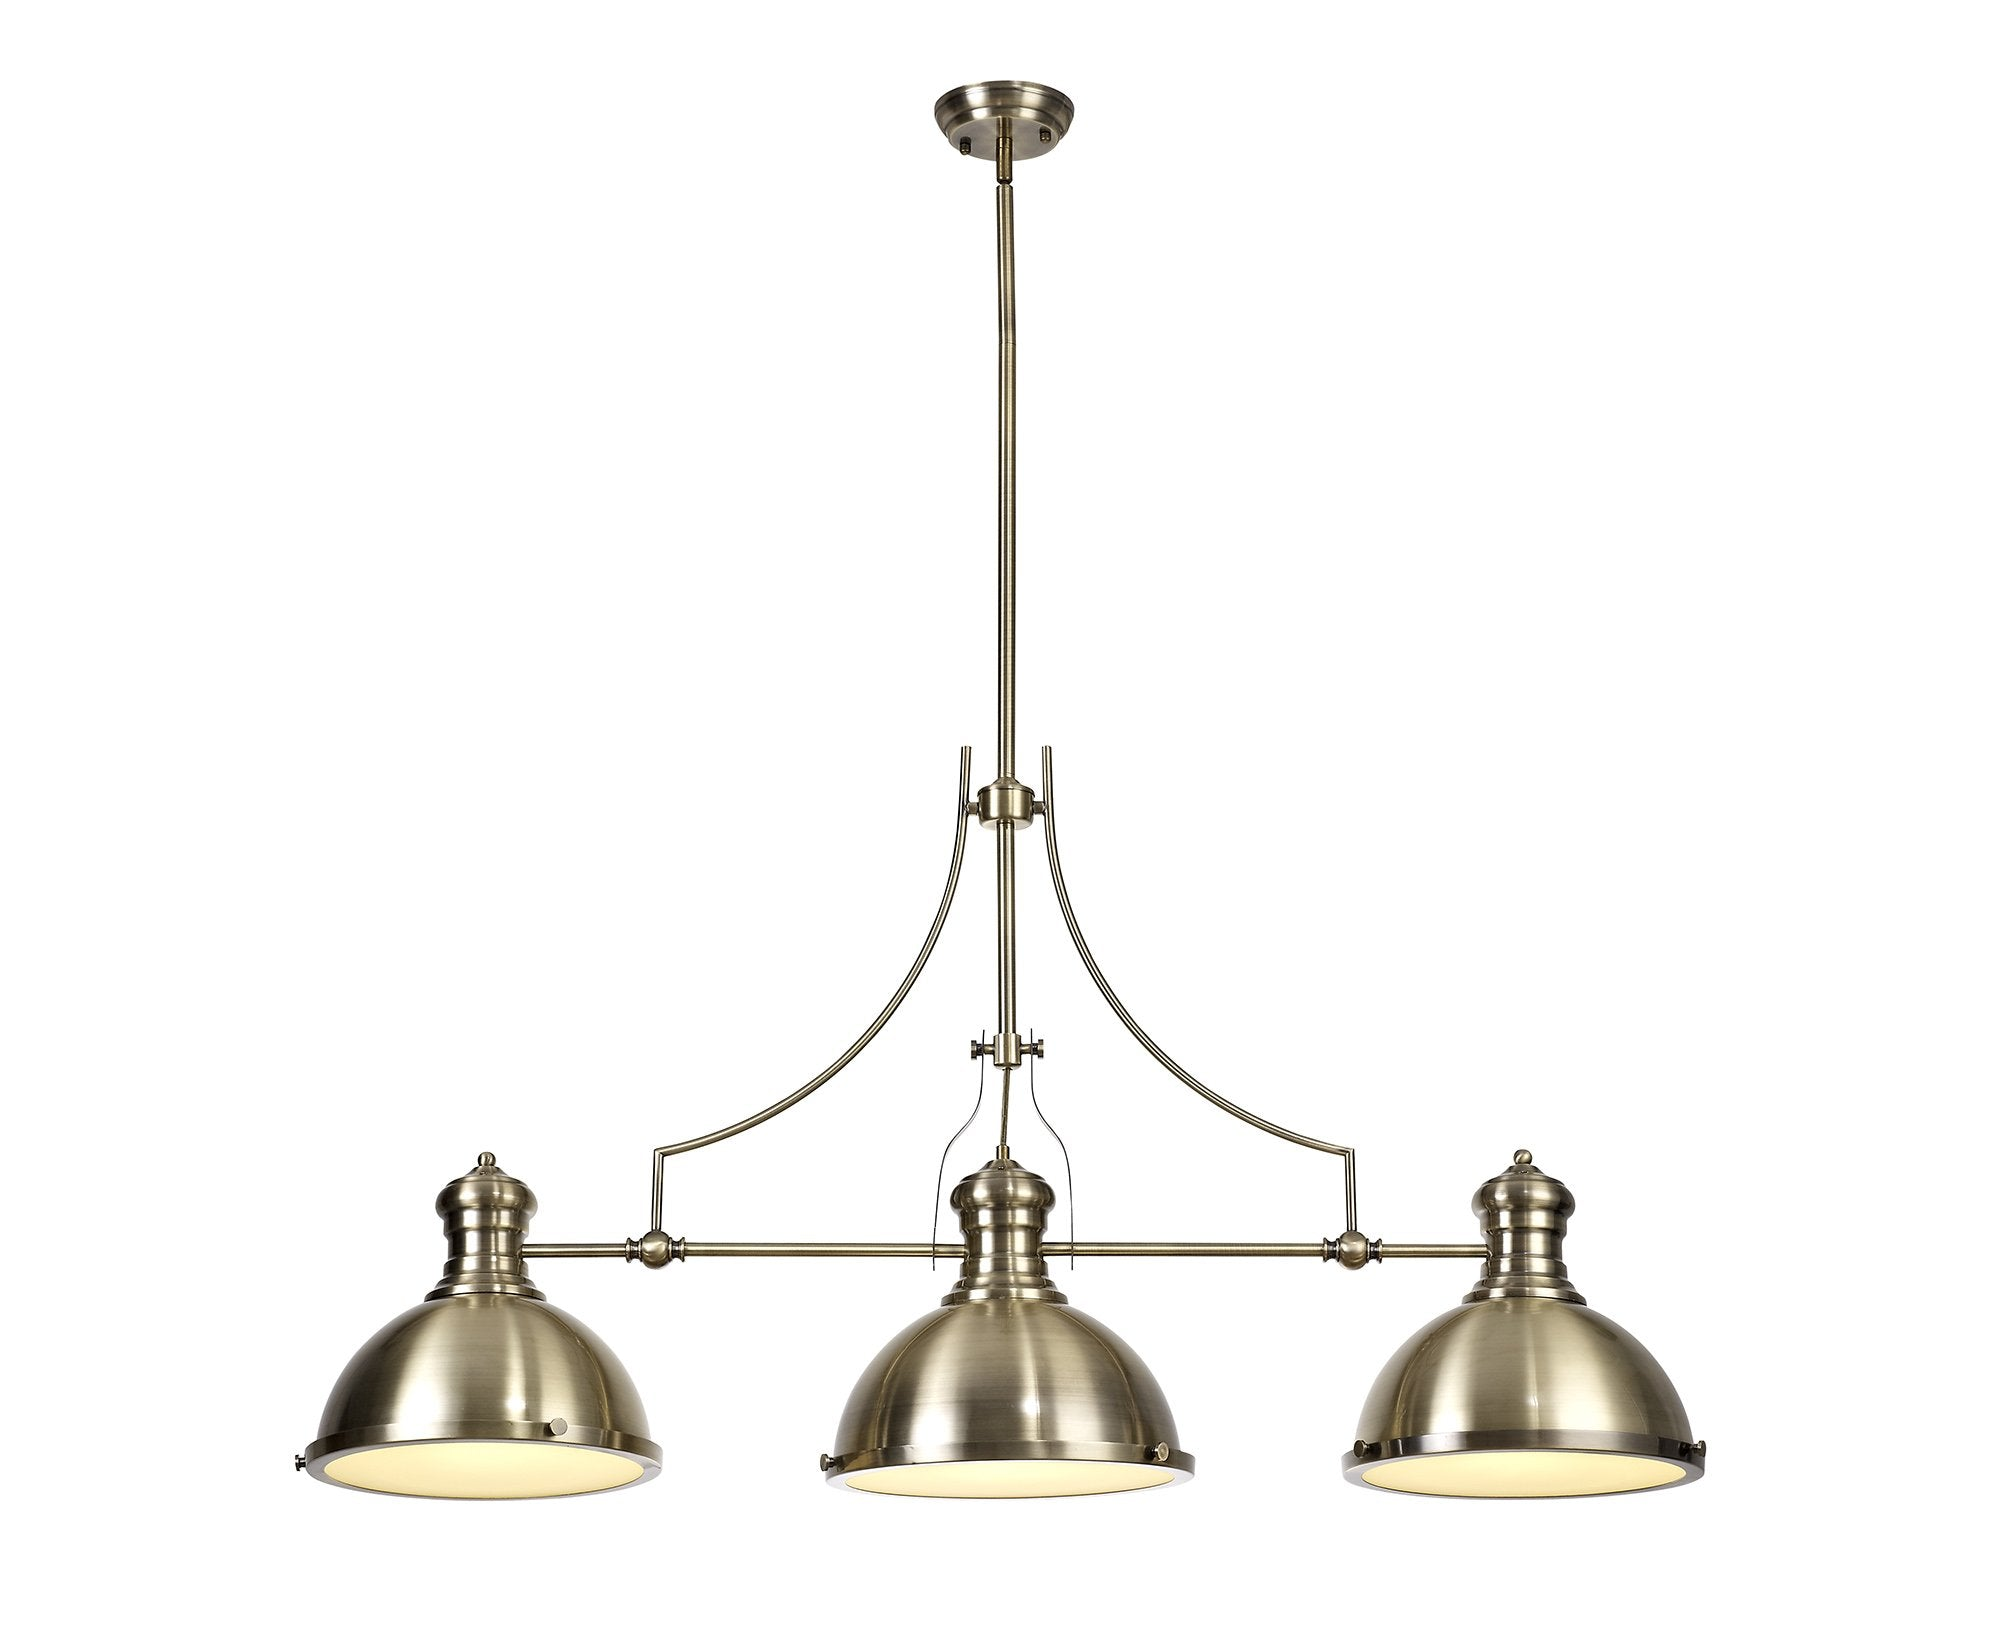 Hanger Linear Pendant, 3 x E27, Antique Brass/Frosted Glass